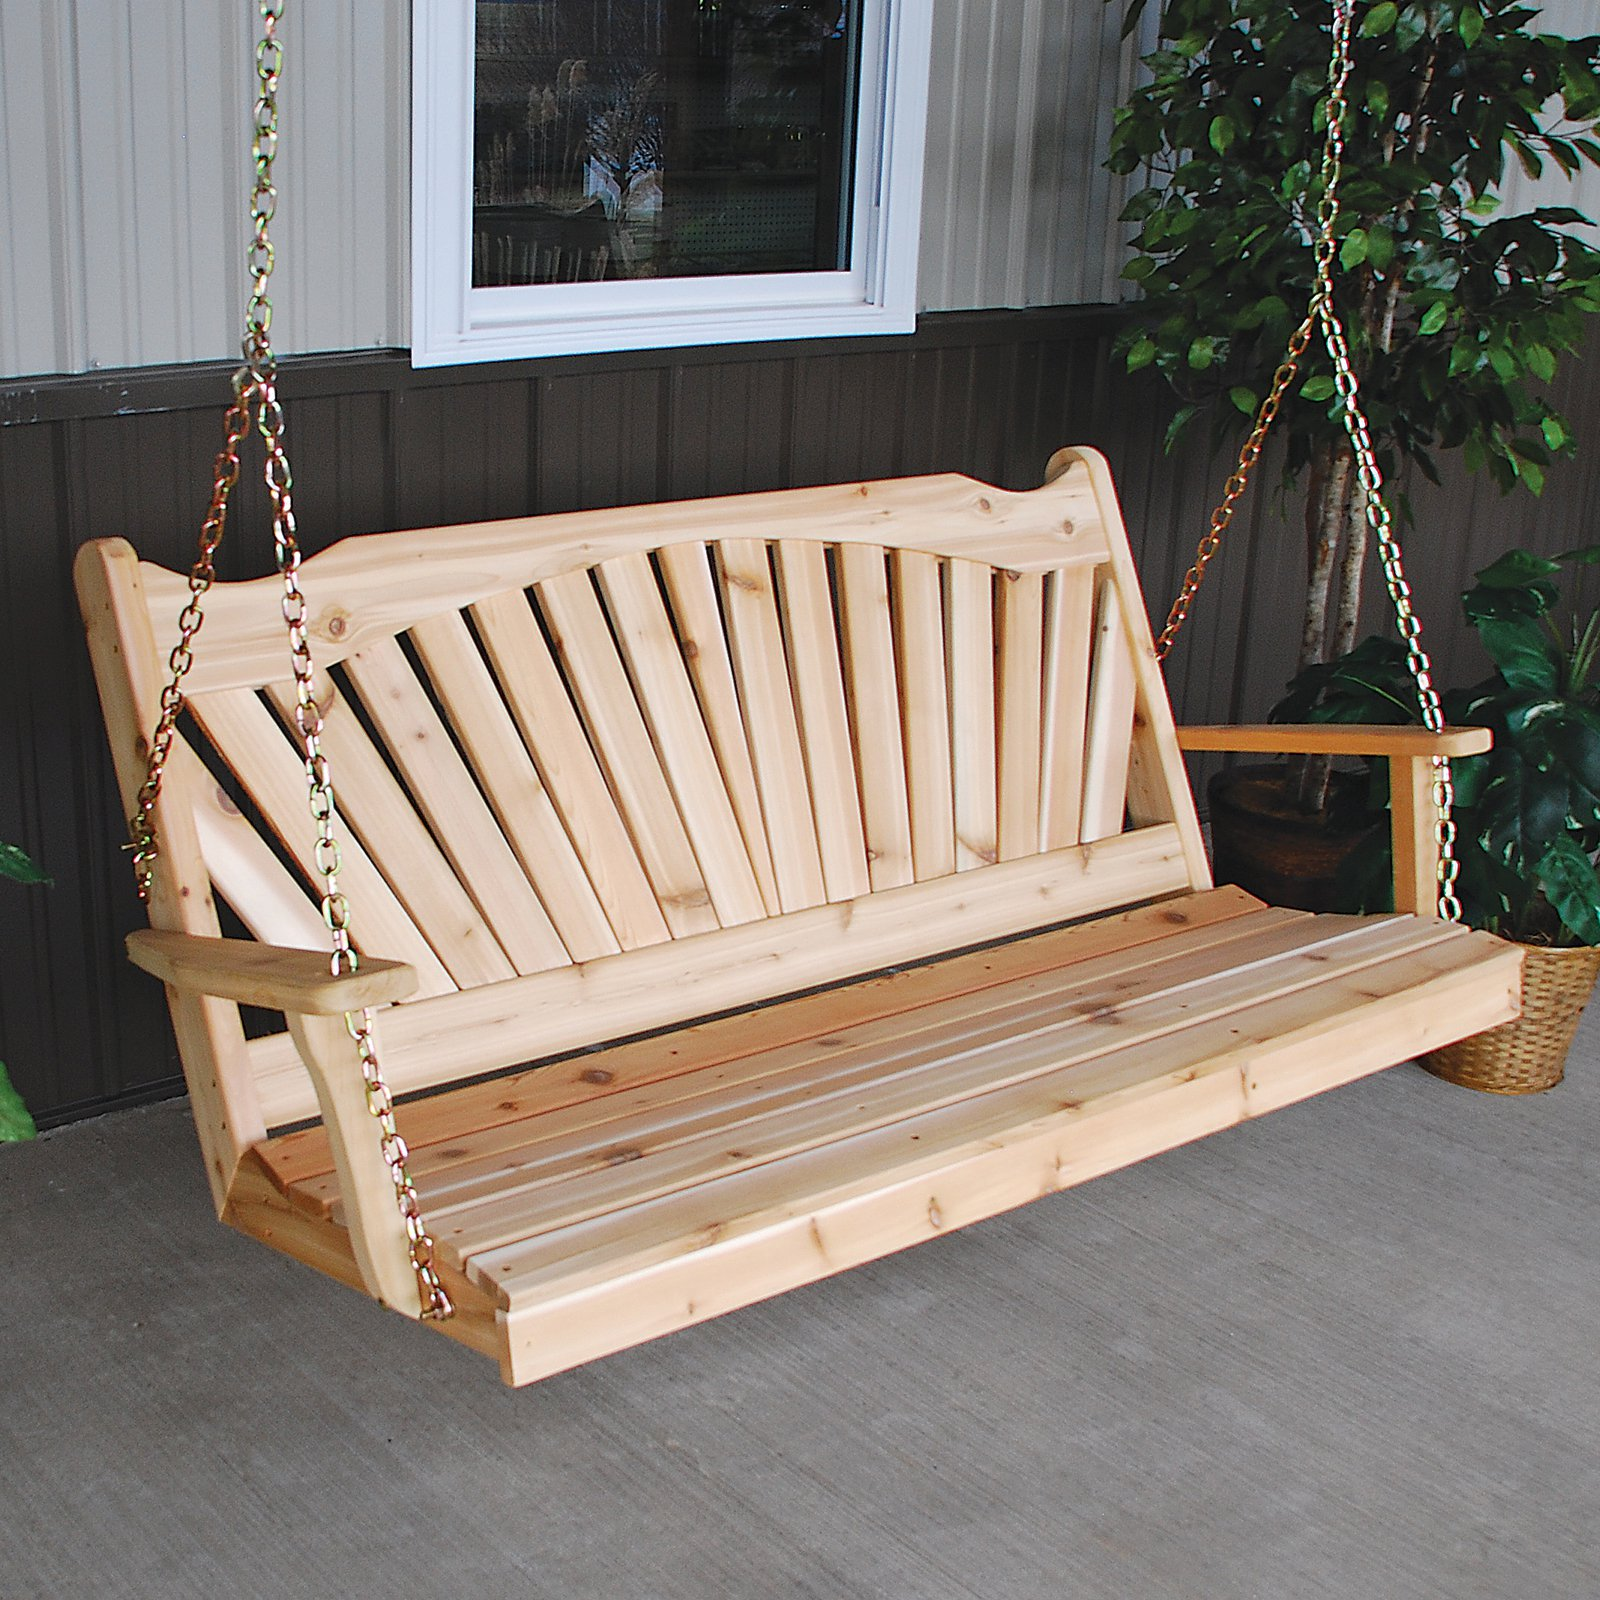 A & L Furniture Western Red Cedar Fanback Porch Swing